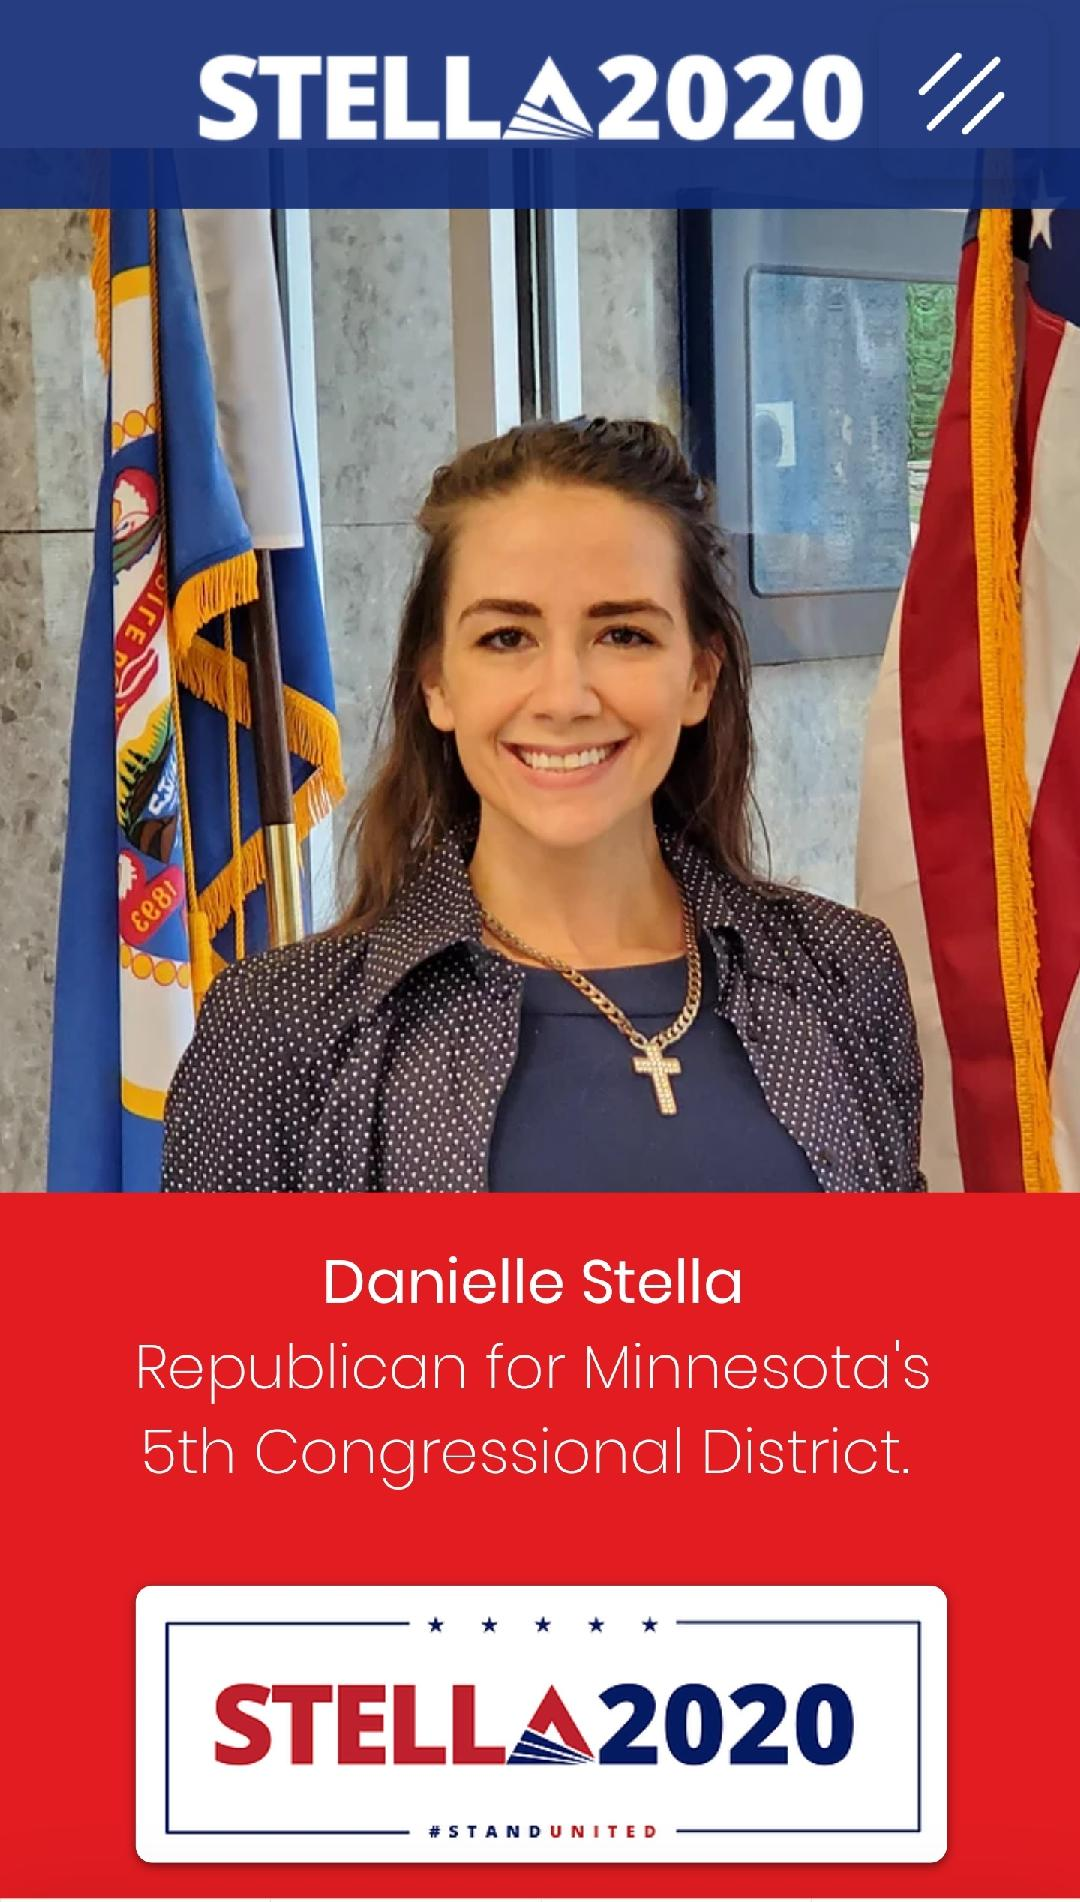 Ilhan Omar`s Challenger Danielle Stella Becomes The Next Victim In The Social Media 2020 Election Interference Campaign